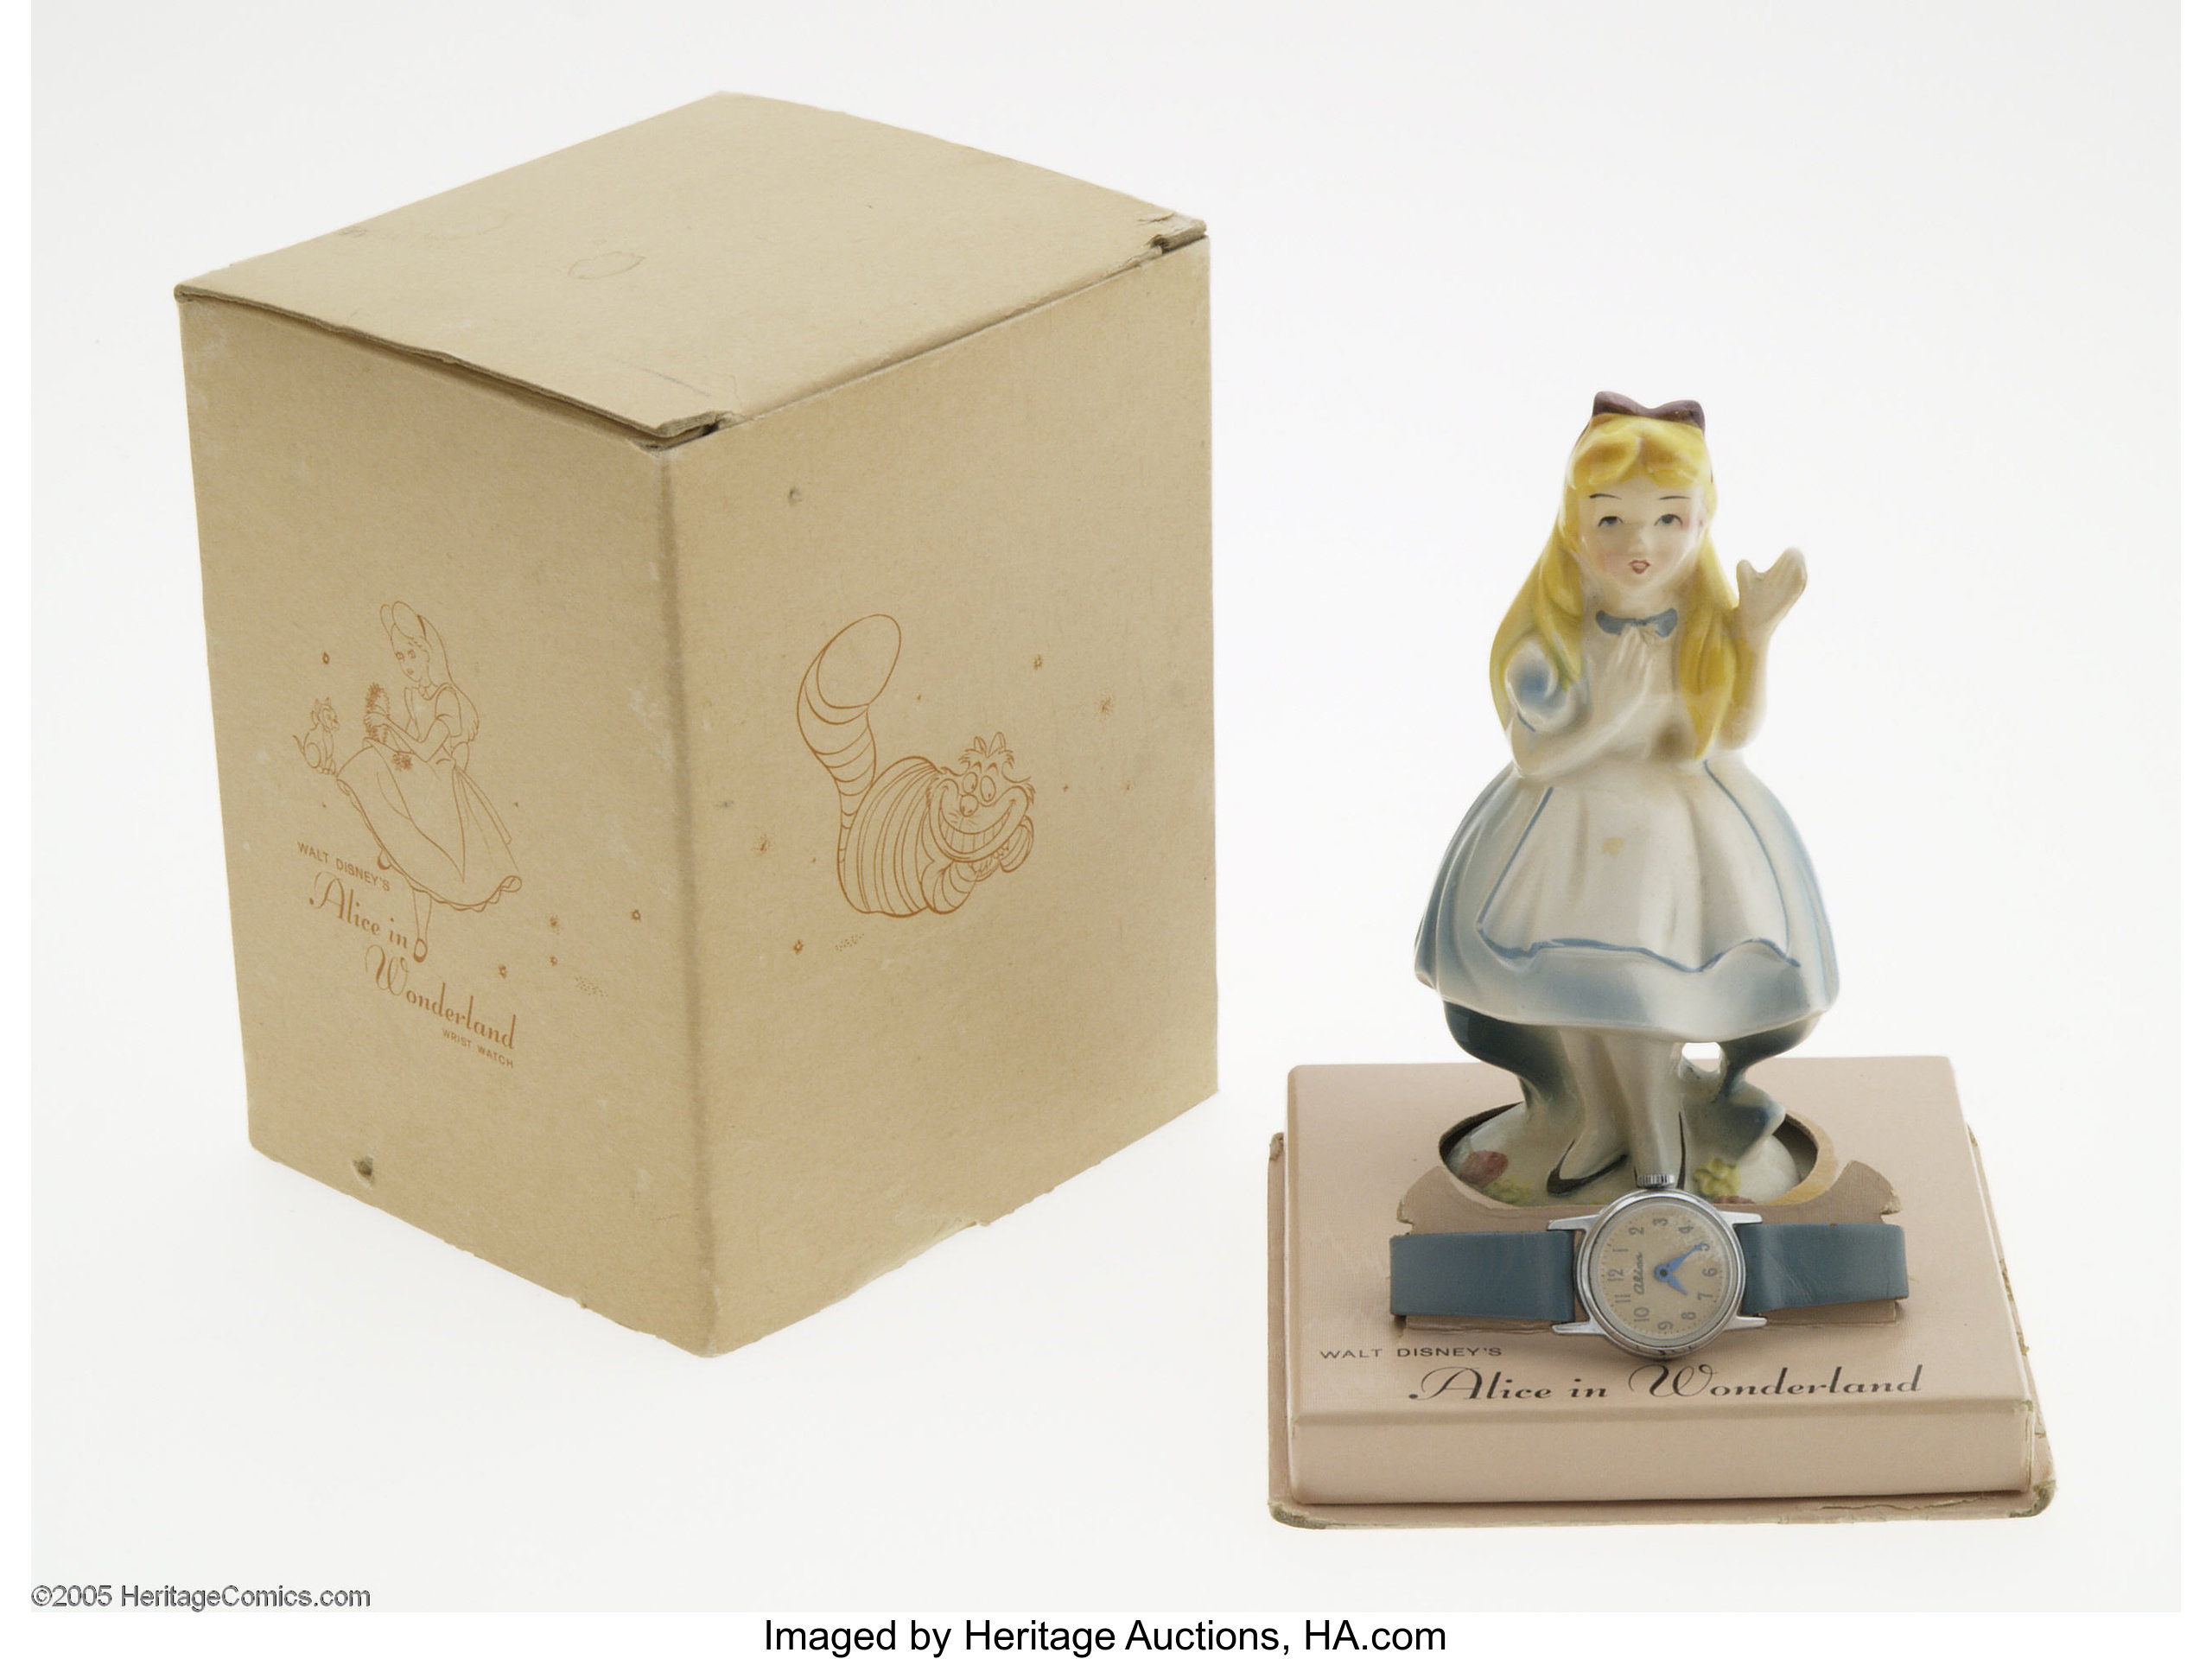 Alice in Wonderland Wrist Watch with Porcelain Figurine and Box